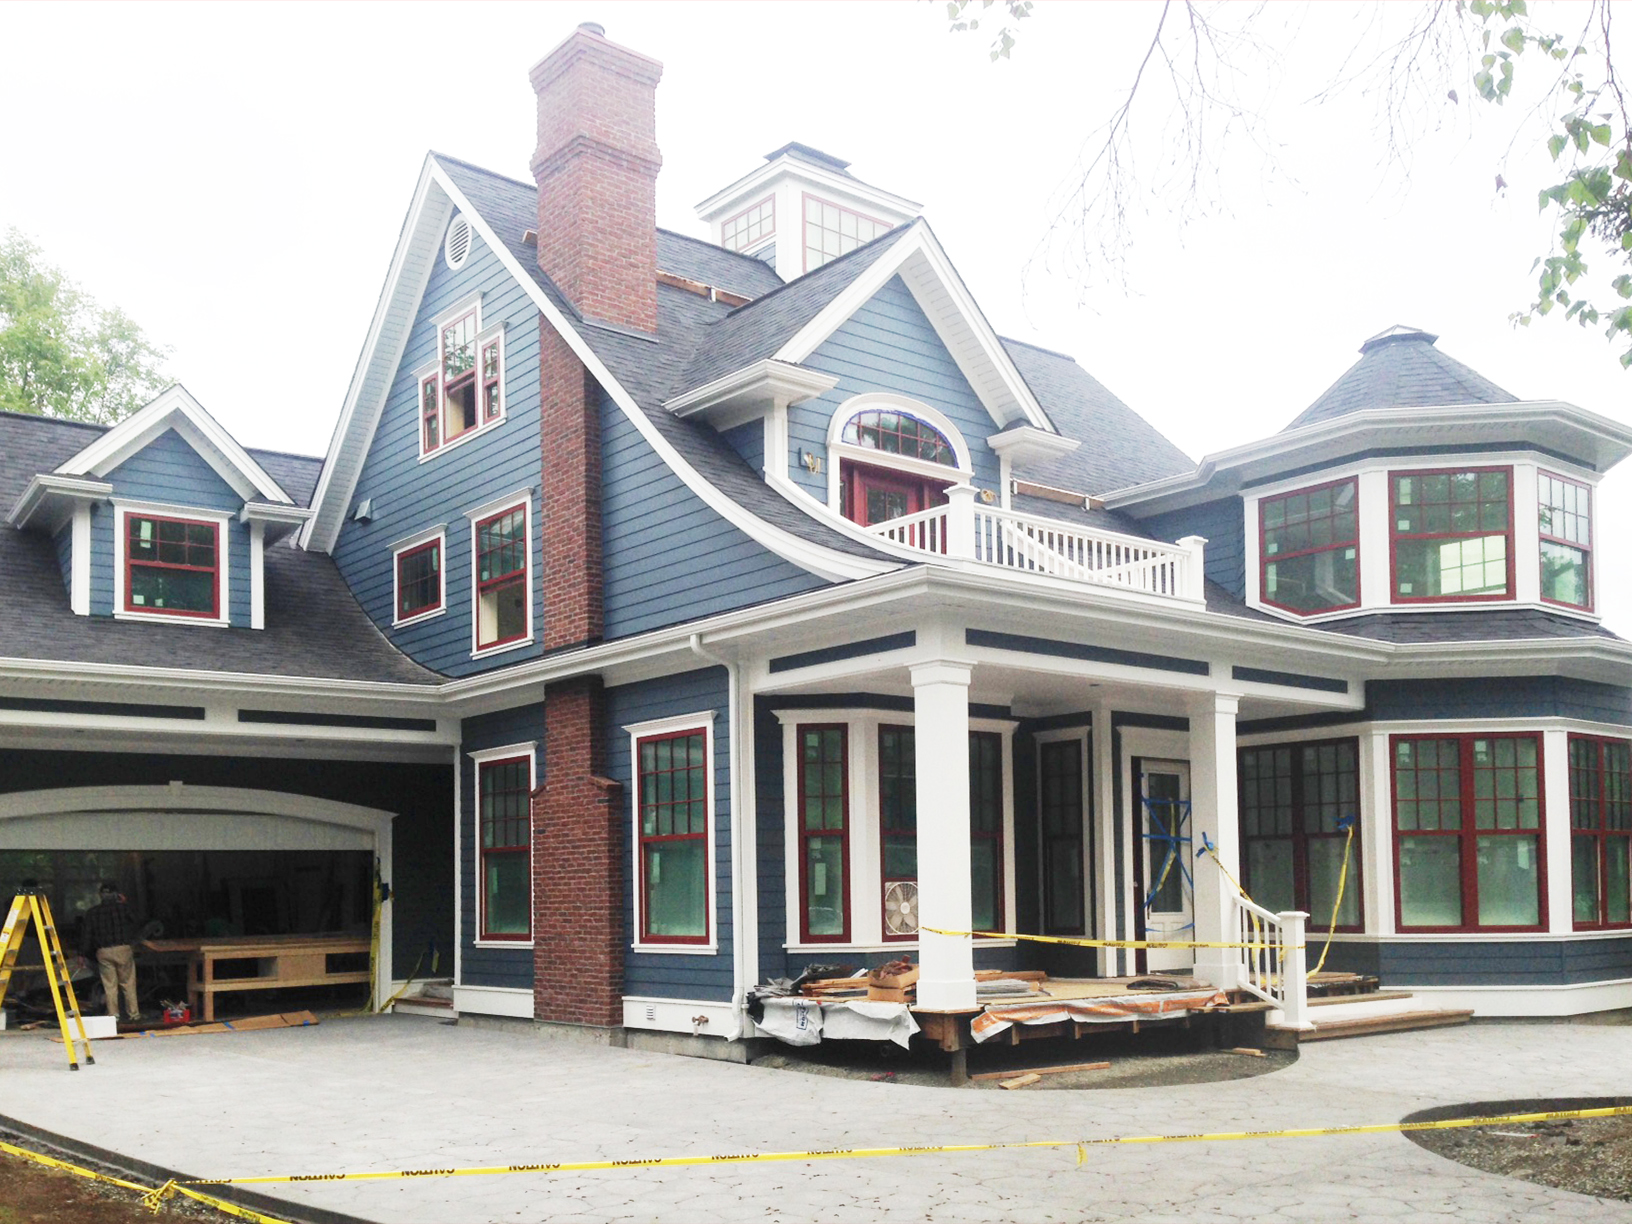 A DESIGN AND BUILD COMPANY BASED IN ANCHORAGE ALASKA - CREATIVE DESIGNS | QUALITY CRAFTSMANSHIP